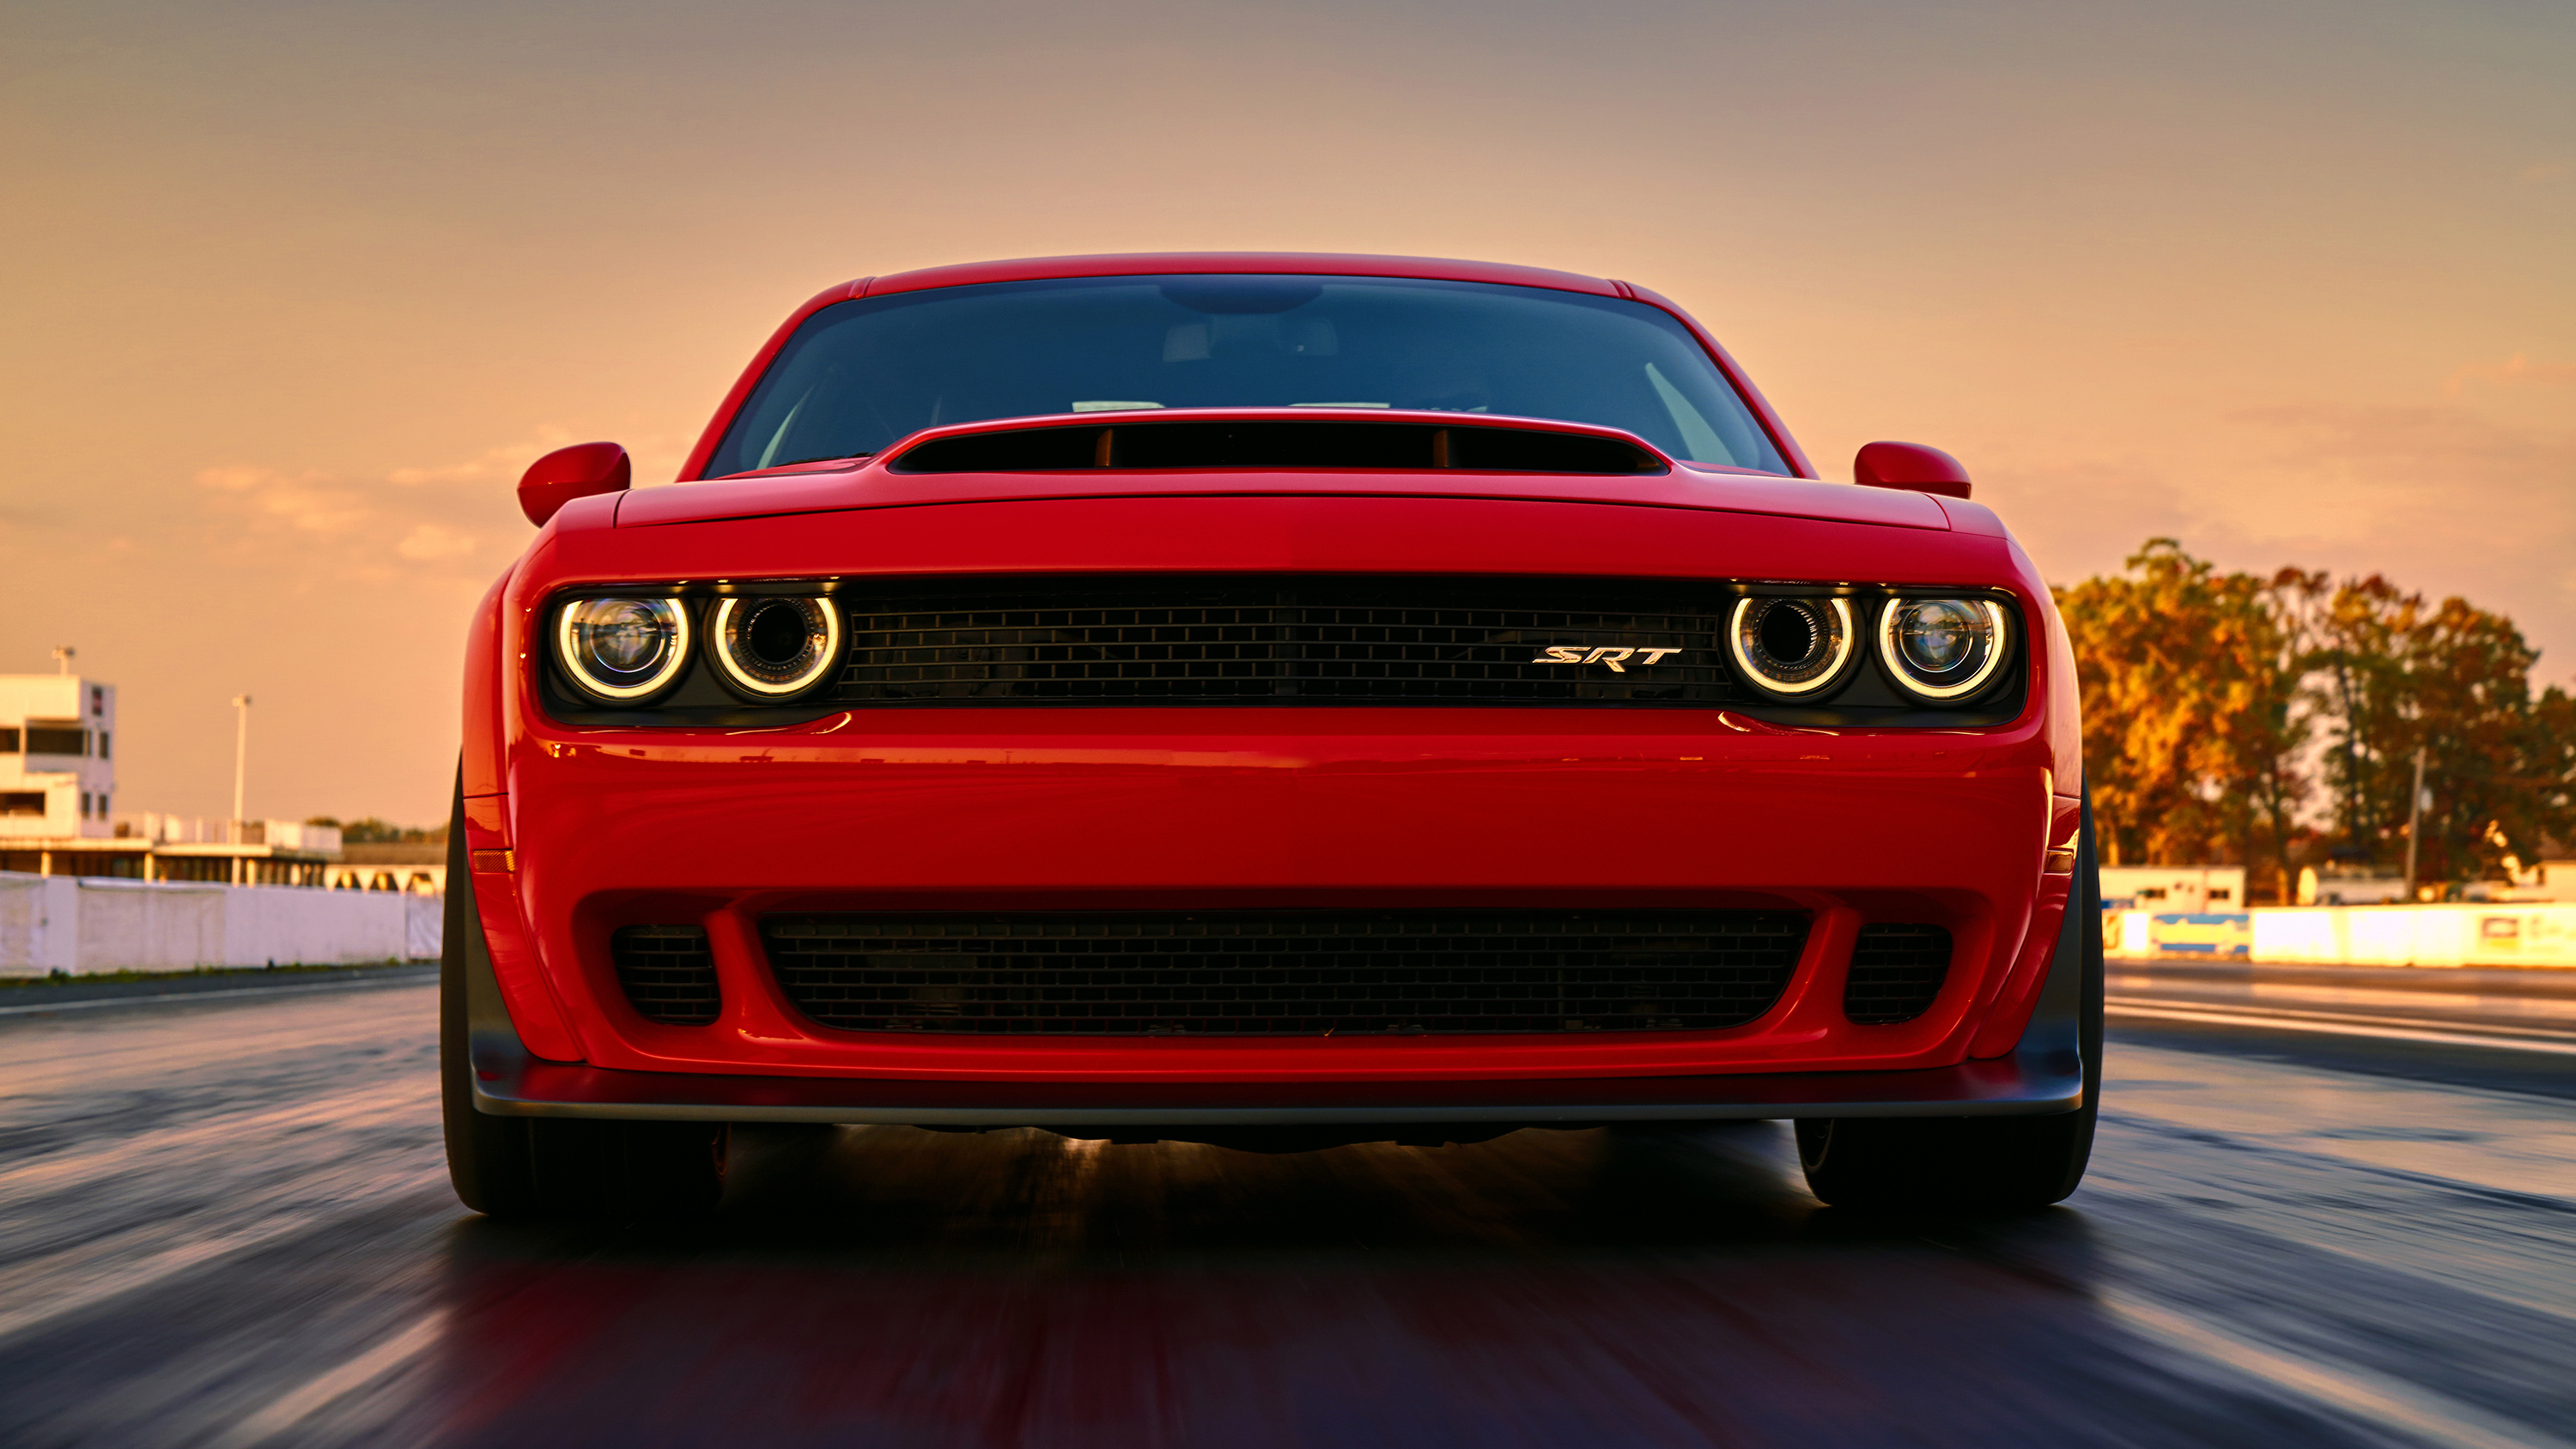 Dodge Charger Rallye >> 2018 Dodge Challenger SRT Demon 9 Wallpaper | HD Car Wallpapers | ID #8013